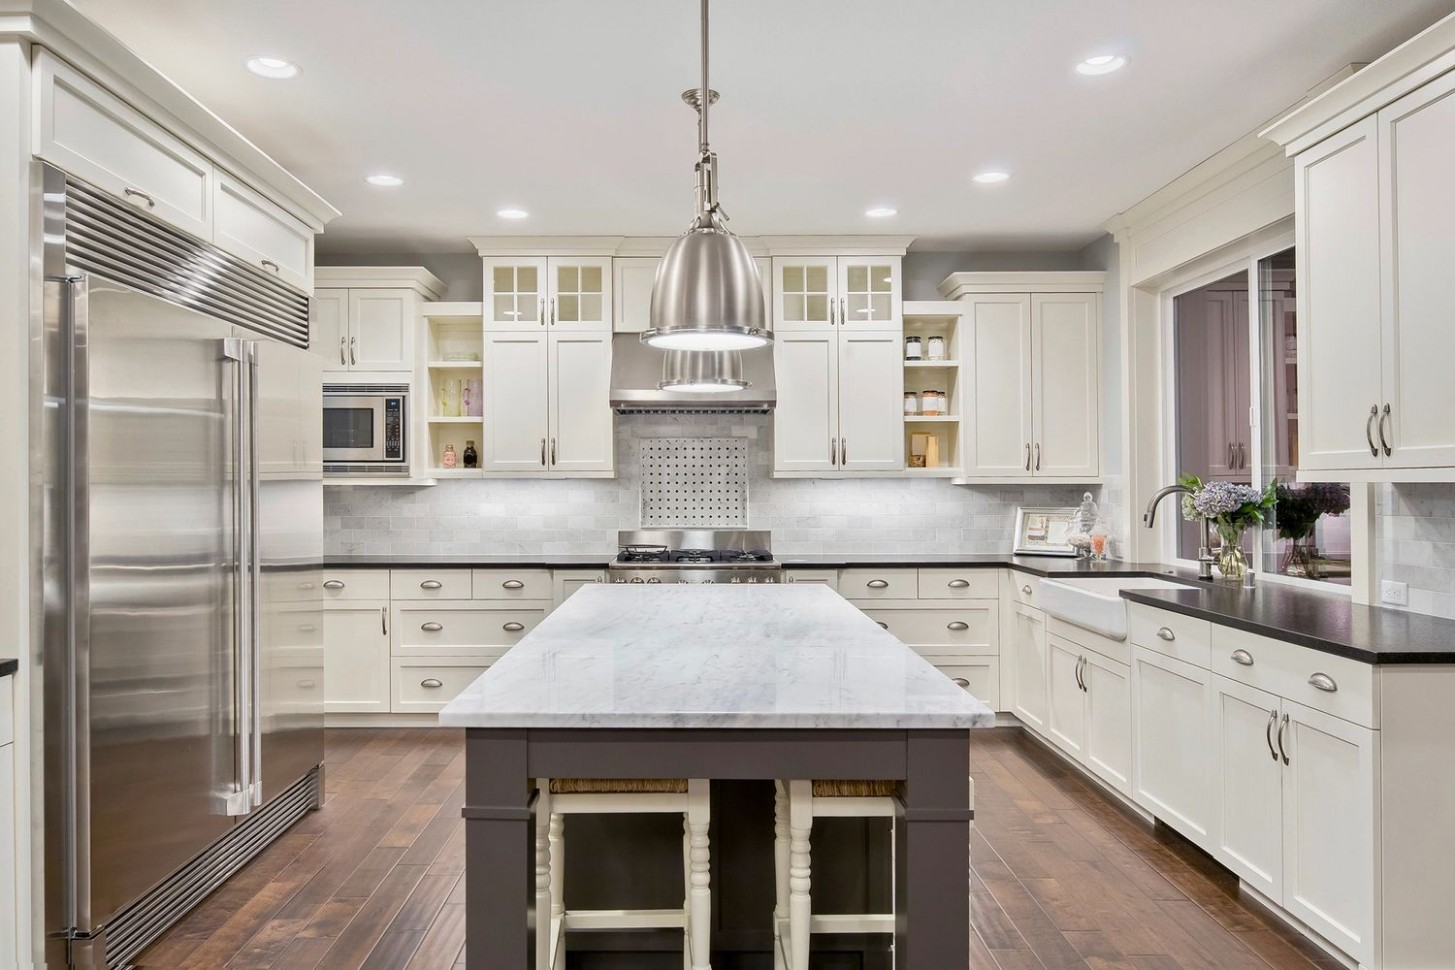 Home - Kitchen Cabinets Refinishing Services